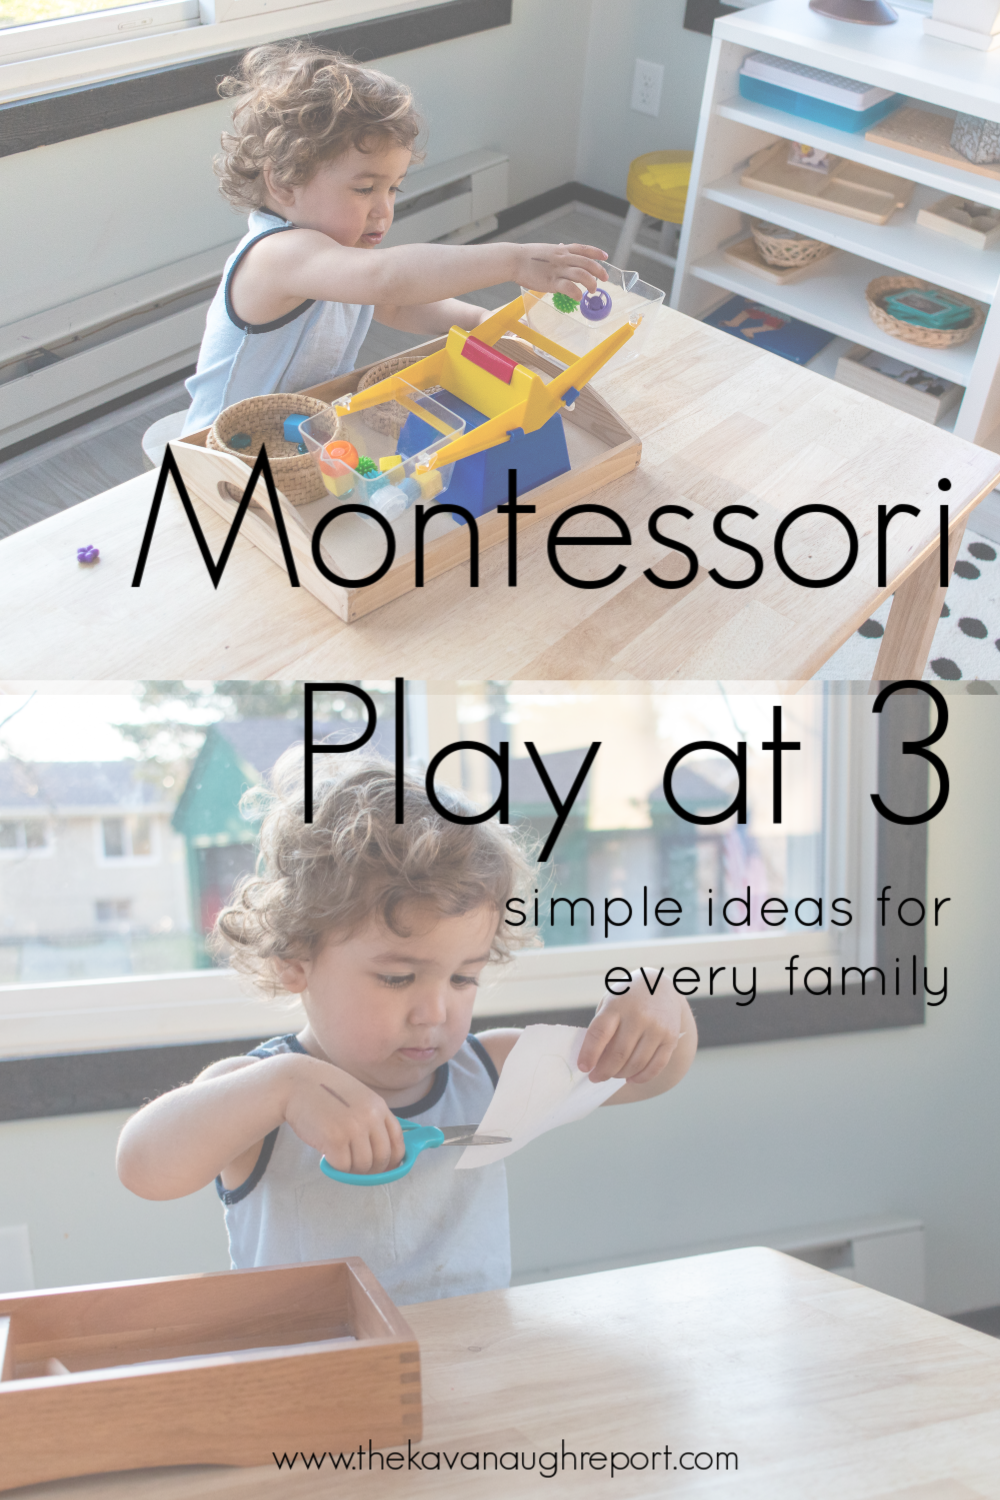 Here are some simple and easy toddler activities for your Montessori home. These fine motor and educational activities are great ways to engage your 3-year-old.